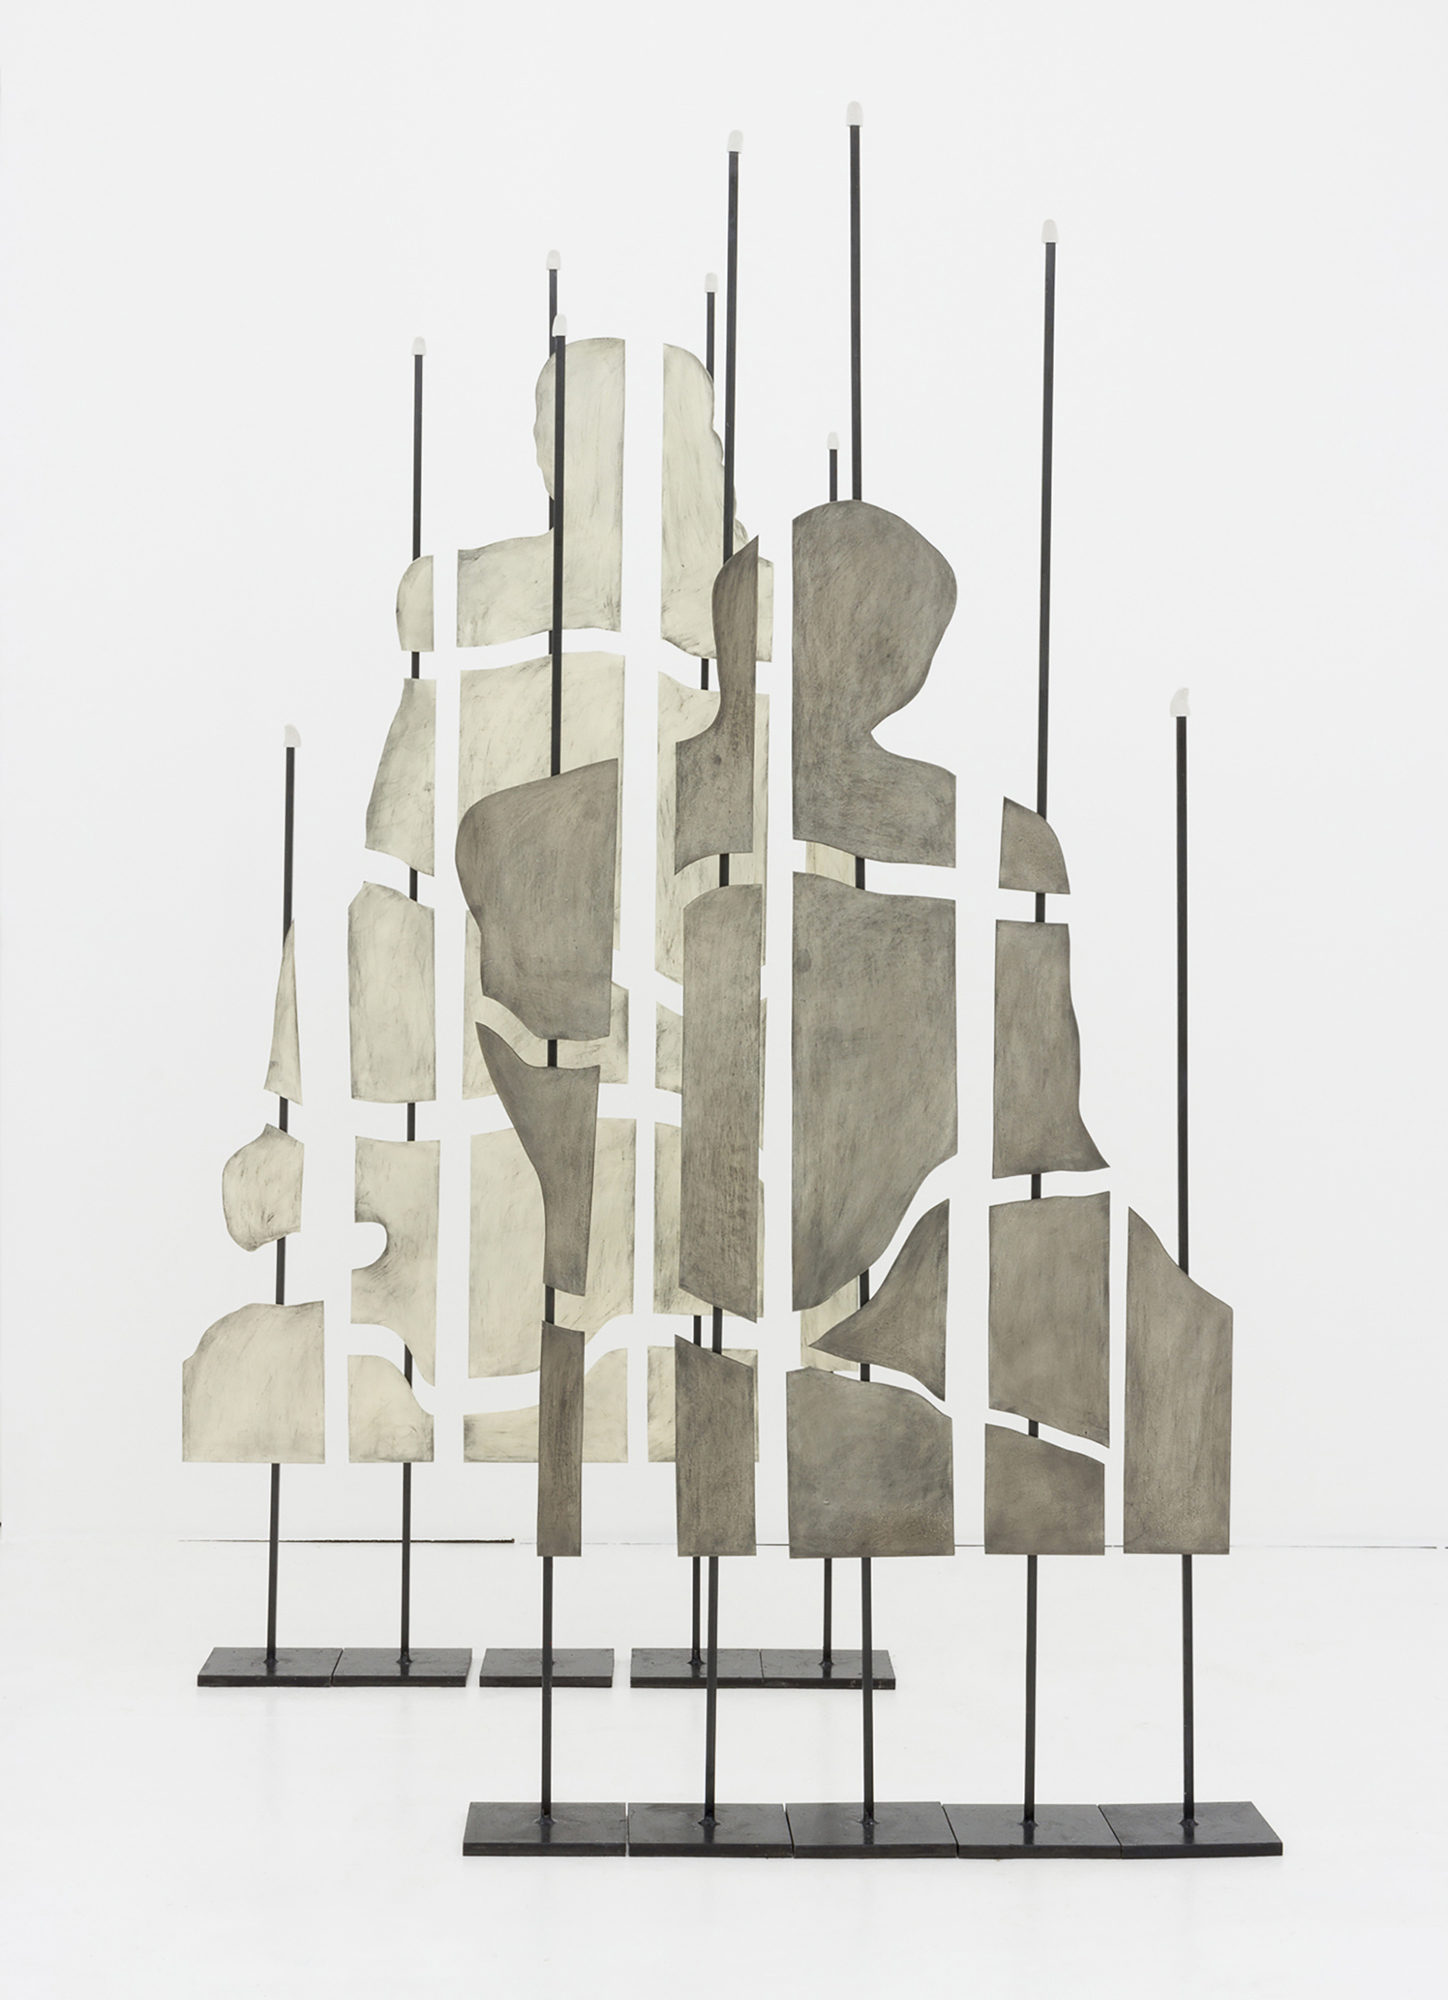 The Eternal Idol: The Left Hand, The Right Hand , 2016. Vanessa Brown. Image courtesy of the artist and Galerie Antoine Ertaskiran, Montréal  Link to MKG127 here:  http://mkg127.com/archive/2019-2/somebody/